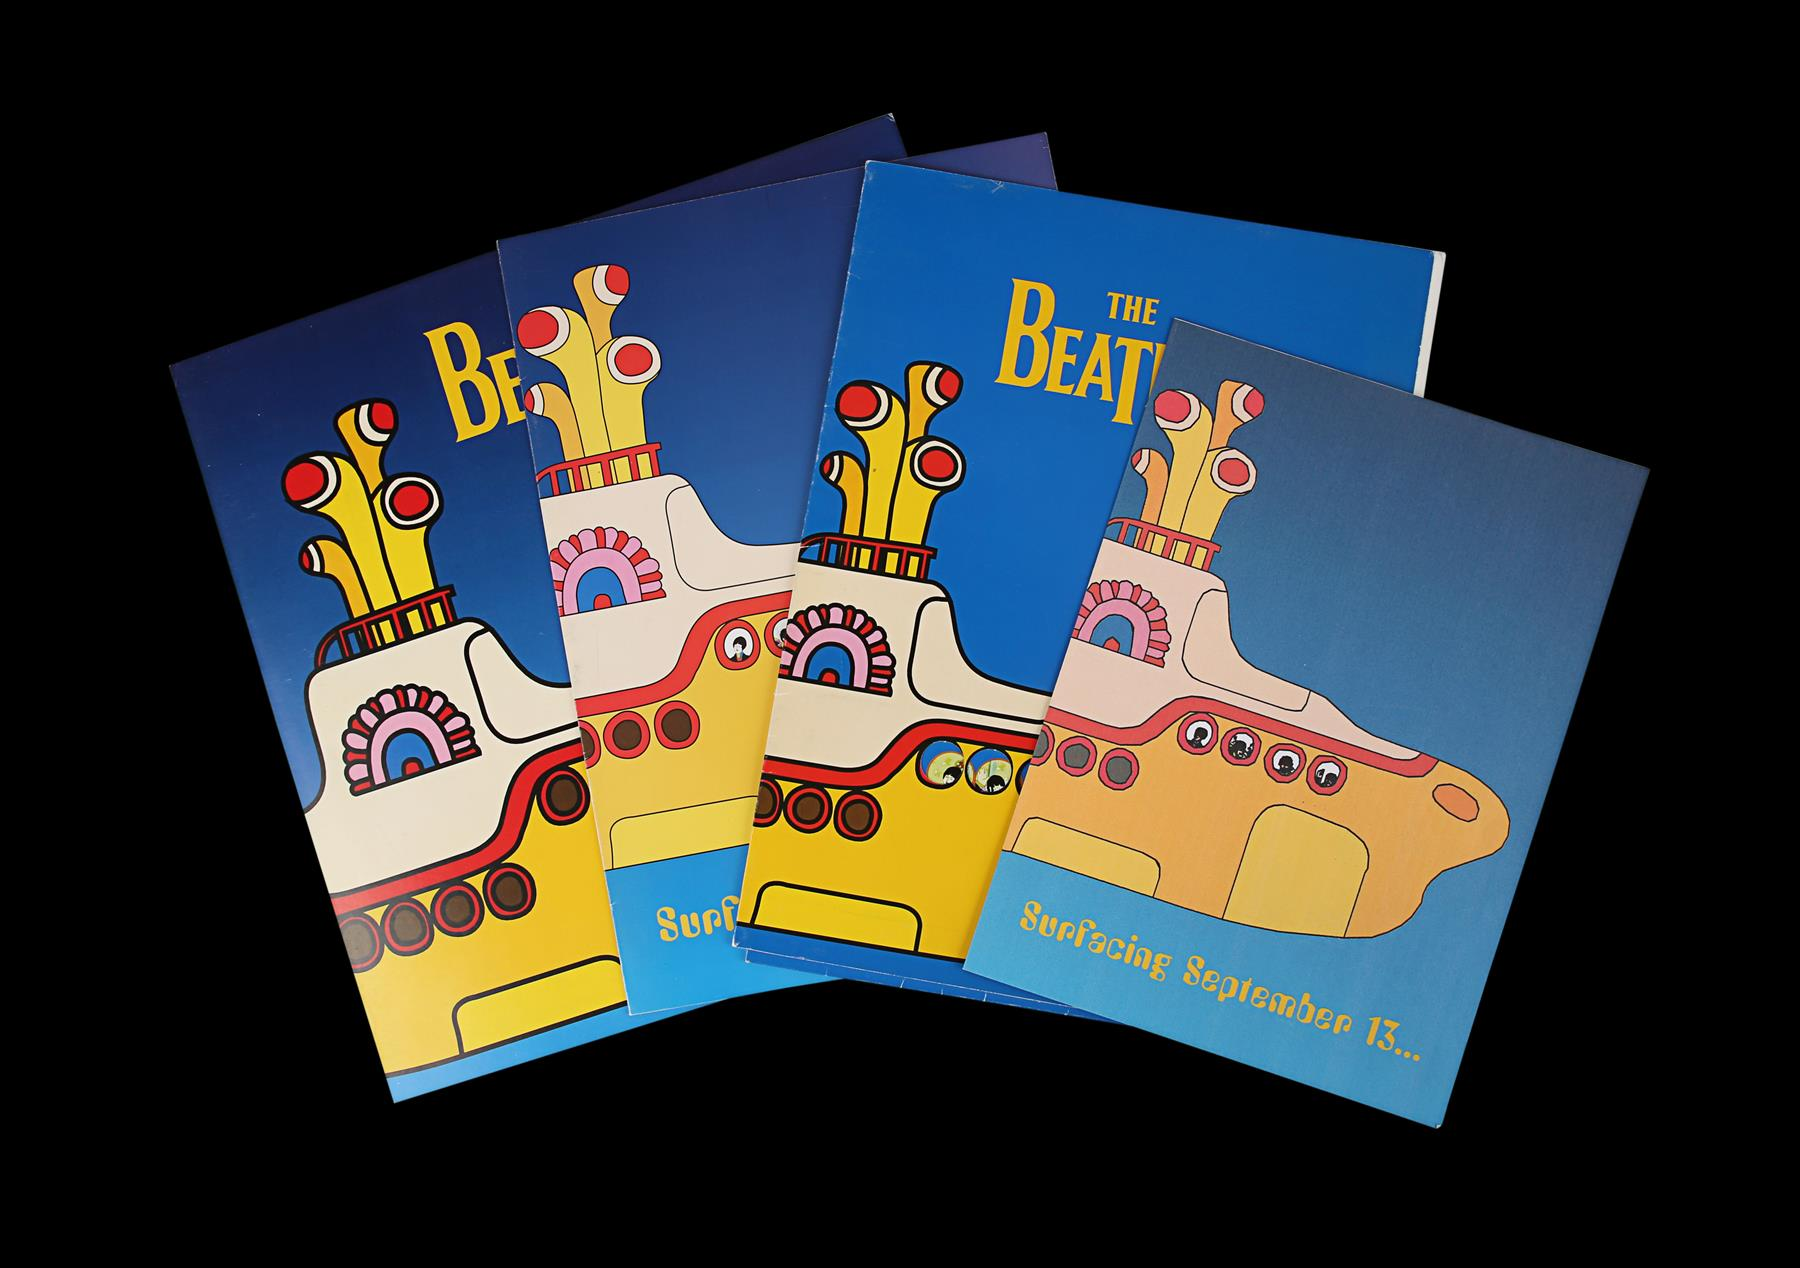 YELLOW SUBMARINE (1968) - Promotional and Marketing Items, 1999 - Image 5 of 9